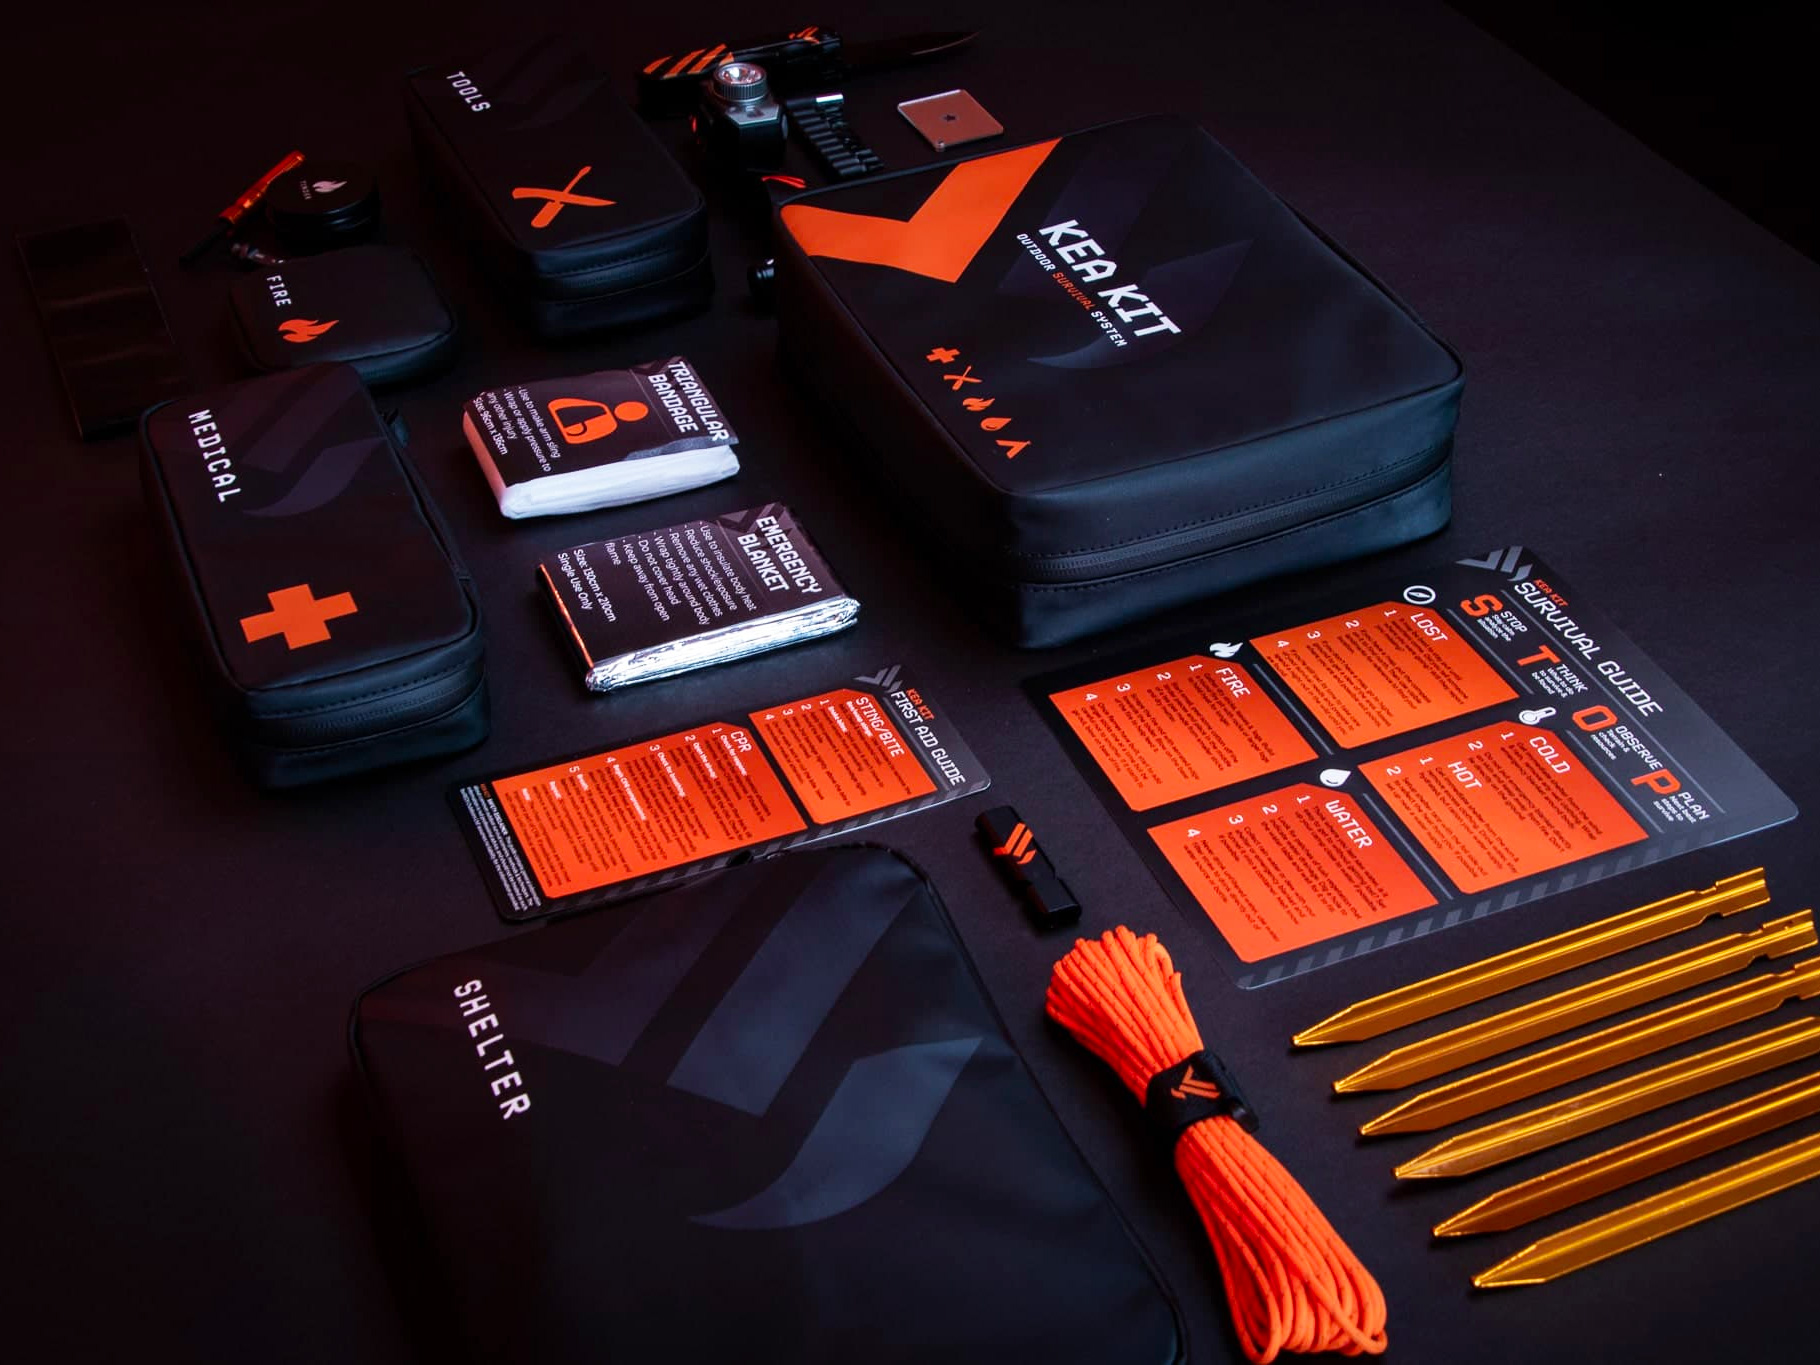 Equip Yourself for Emergencies with the Kea Kit at werd.com